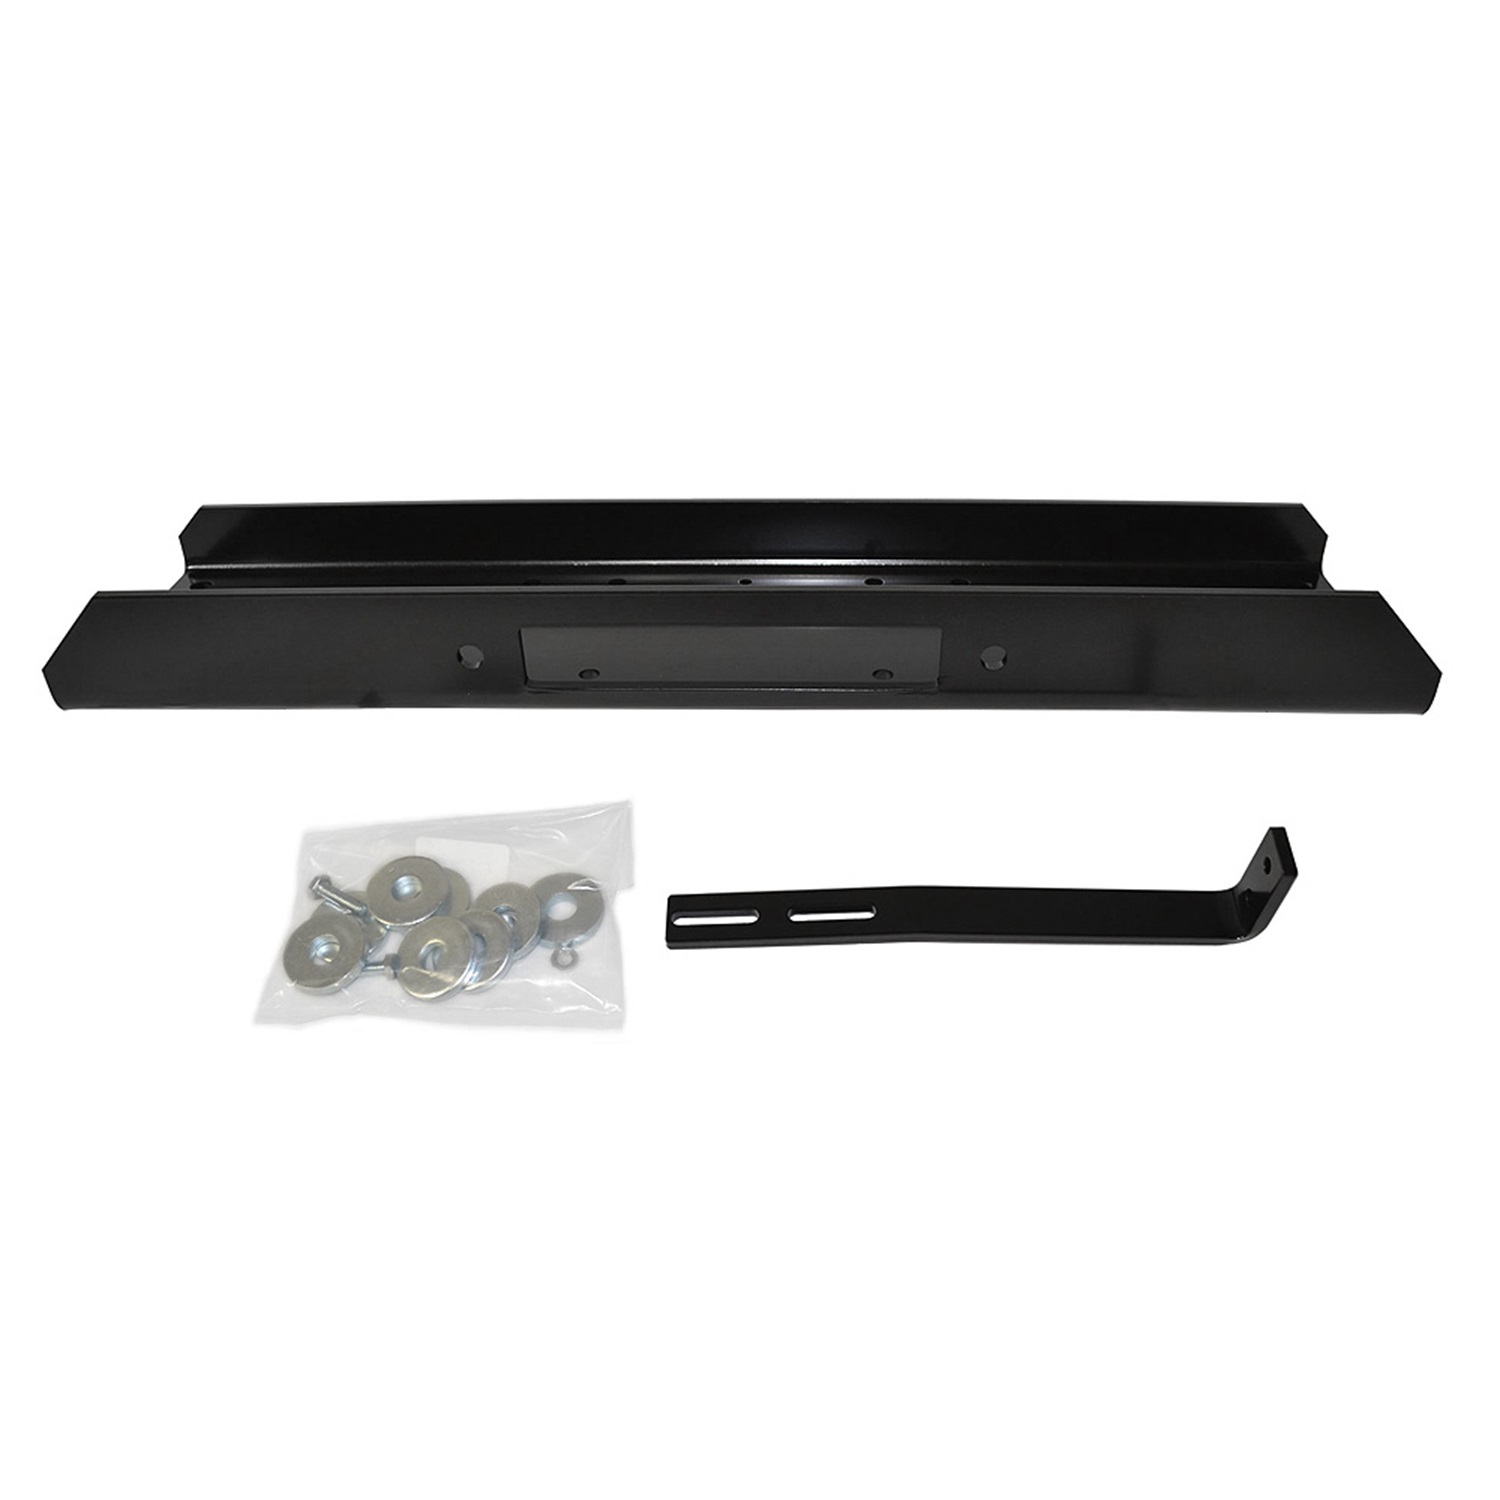 Warn 13942 Universal Foot Down Winch Mount Kit at Sears.com